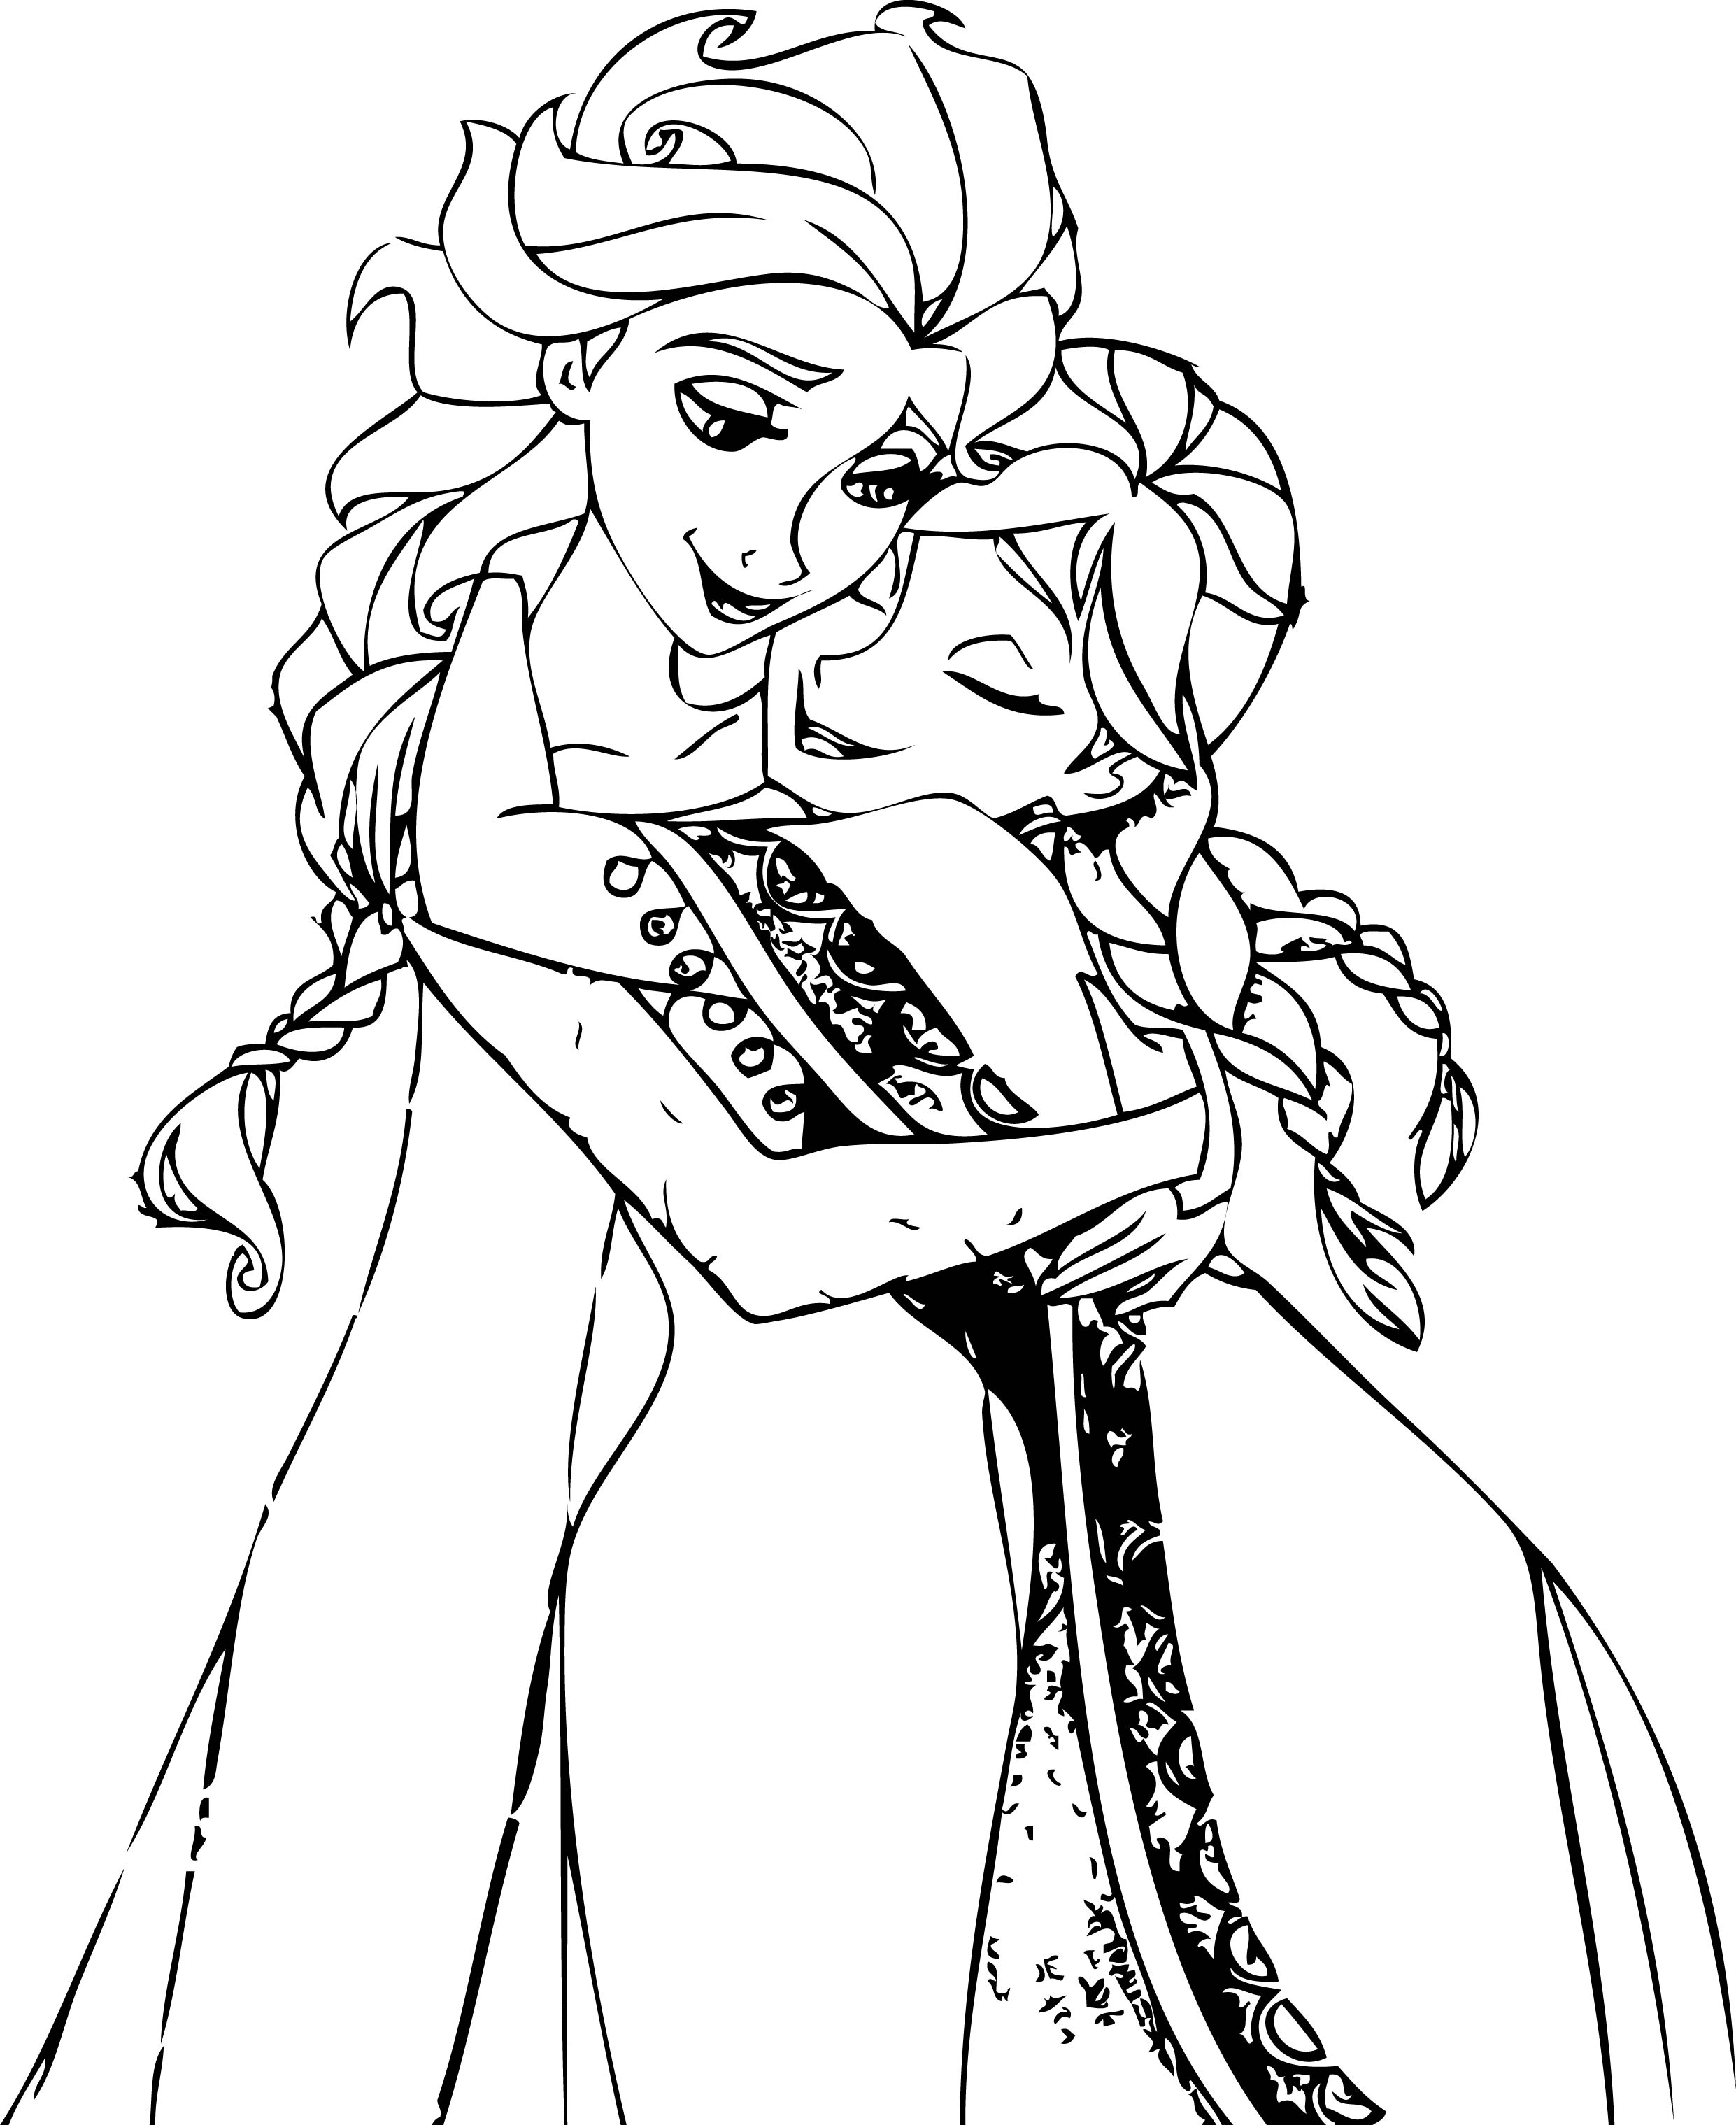 elsa and anna hug coloring page - Elsa And Anna Coloring Pages